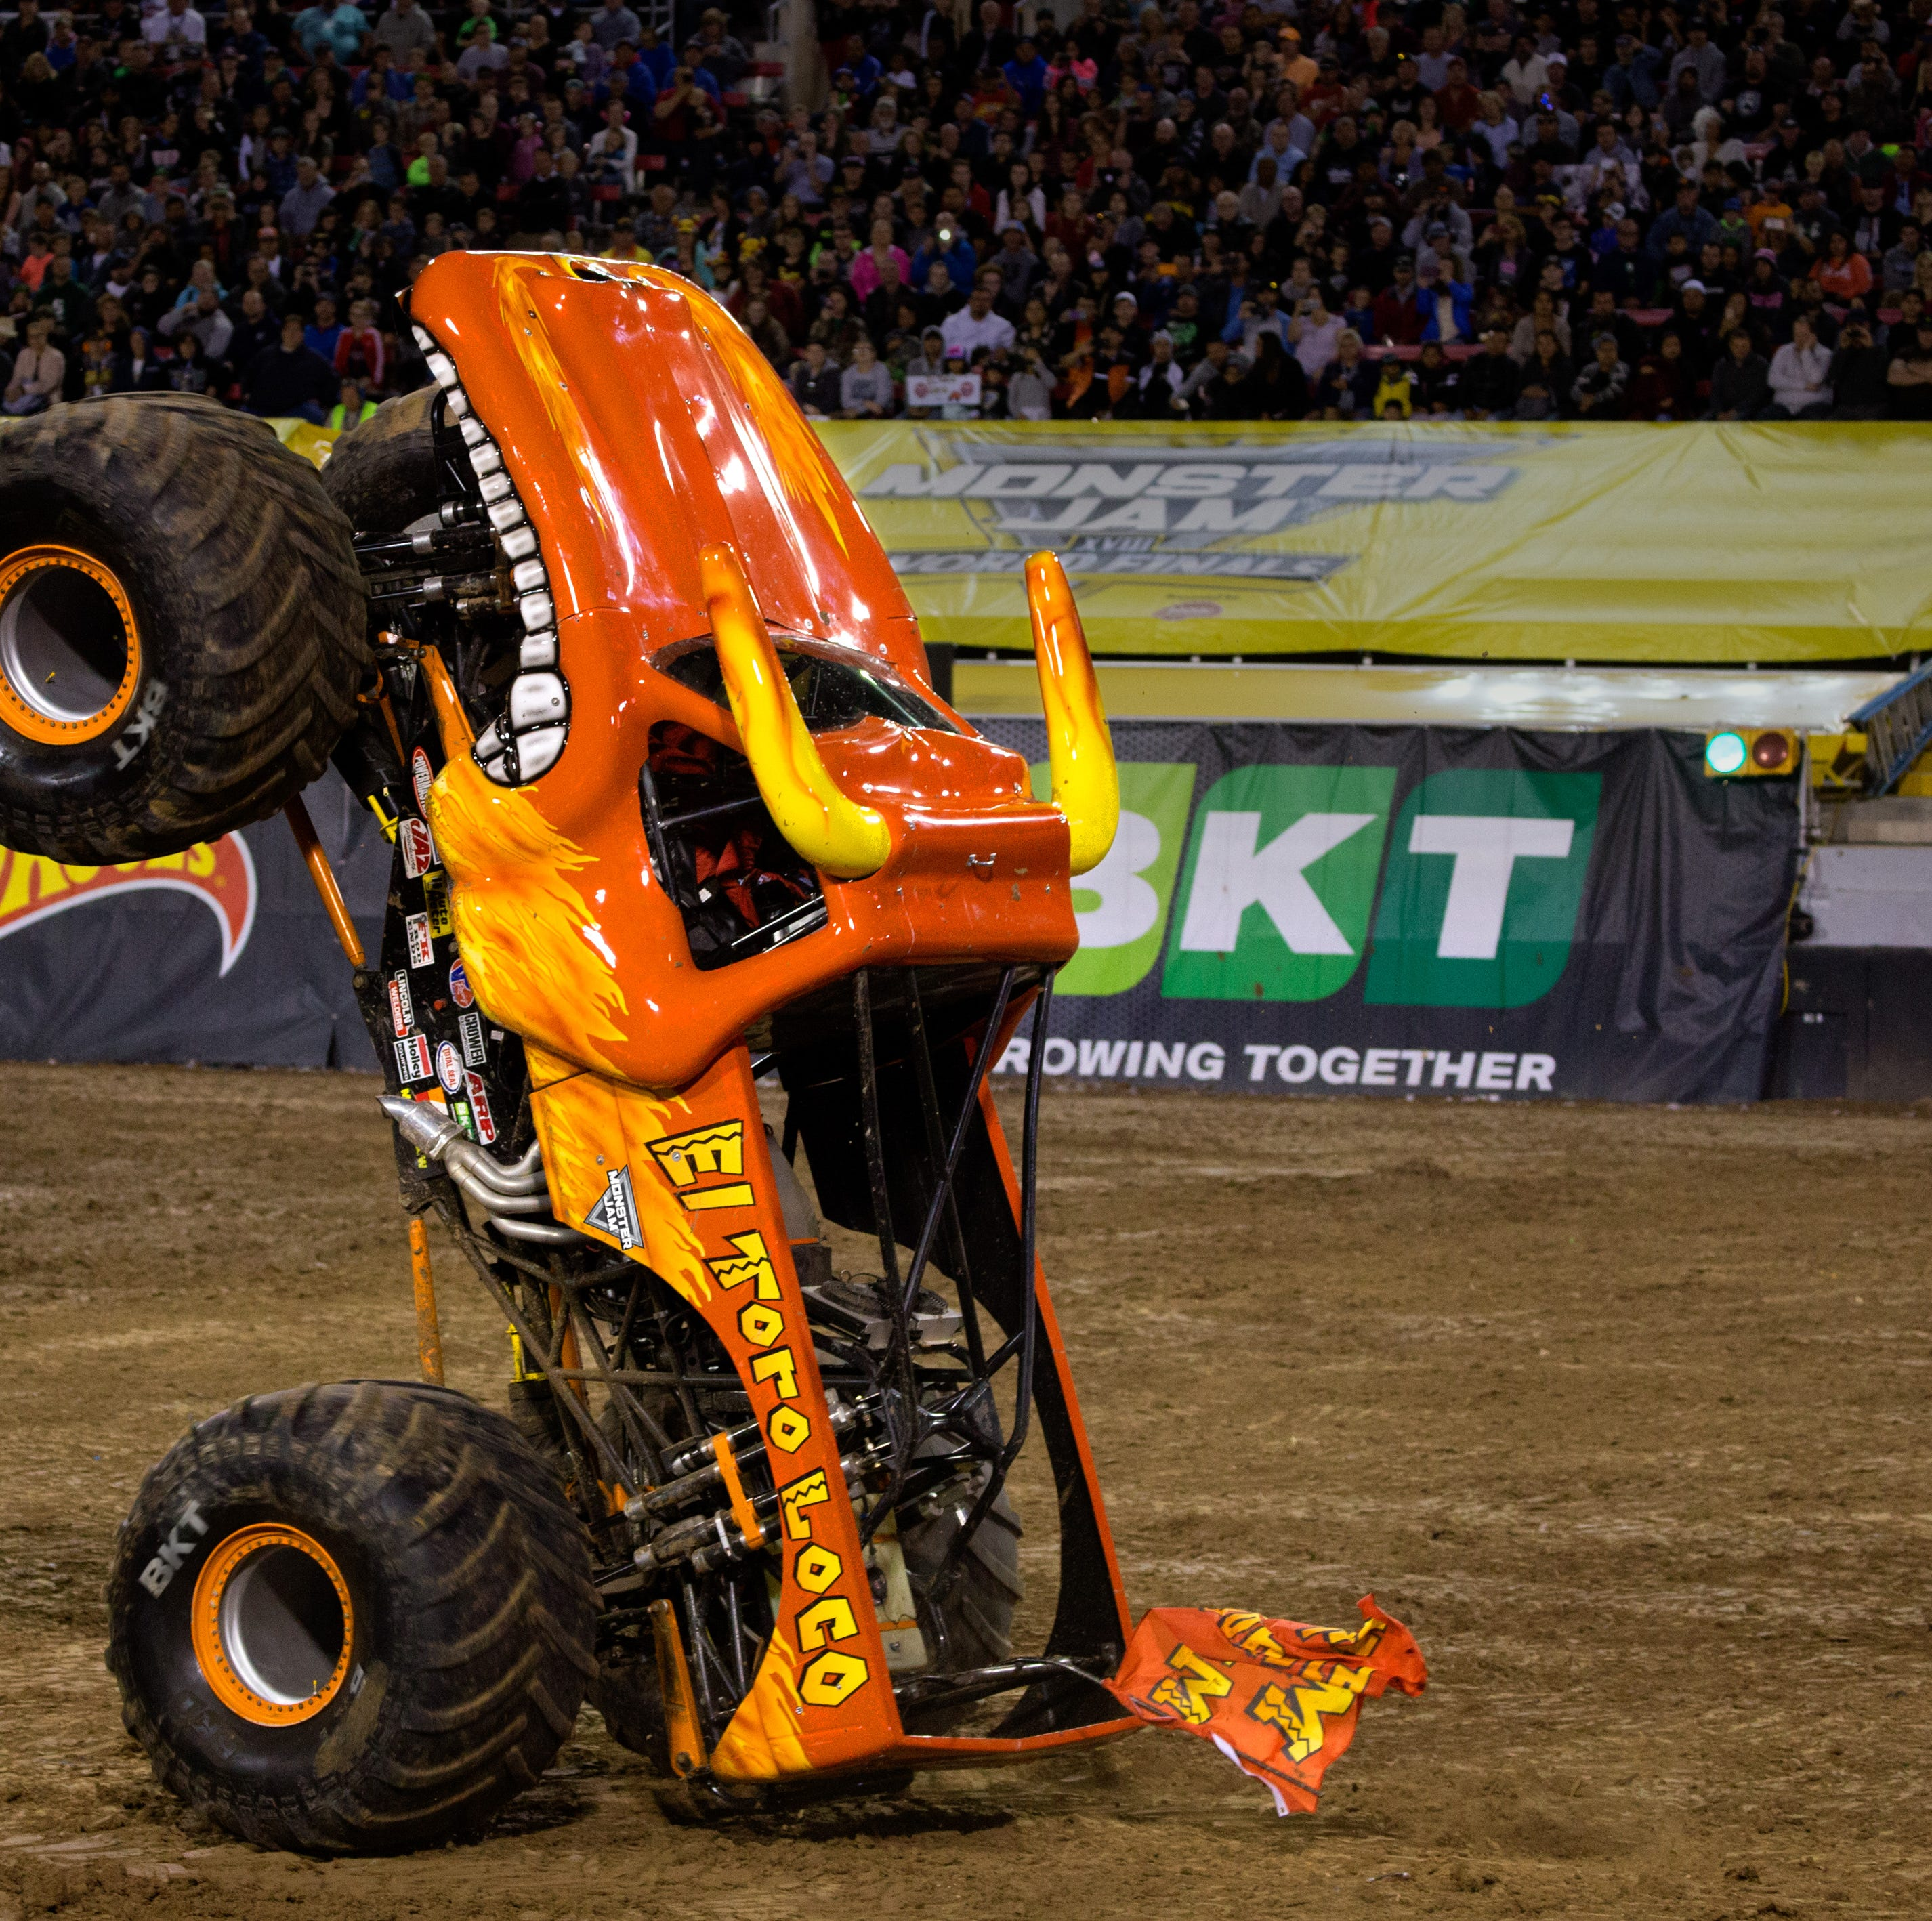 Ready to get your Monster Jam tickets? Tickets for 2019 spectacular go on sale Tuesday